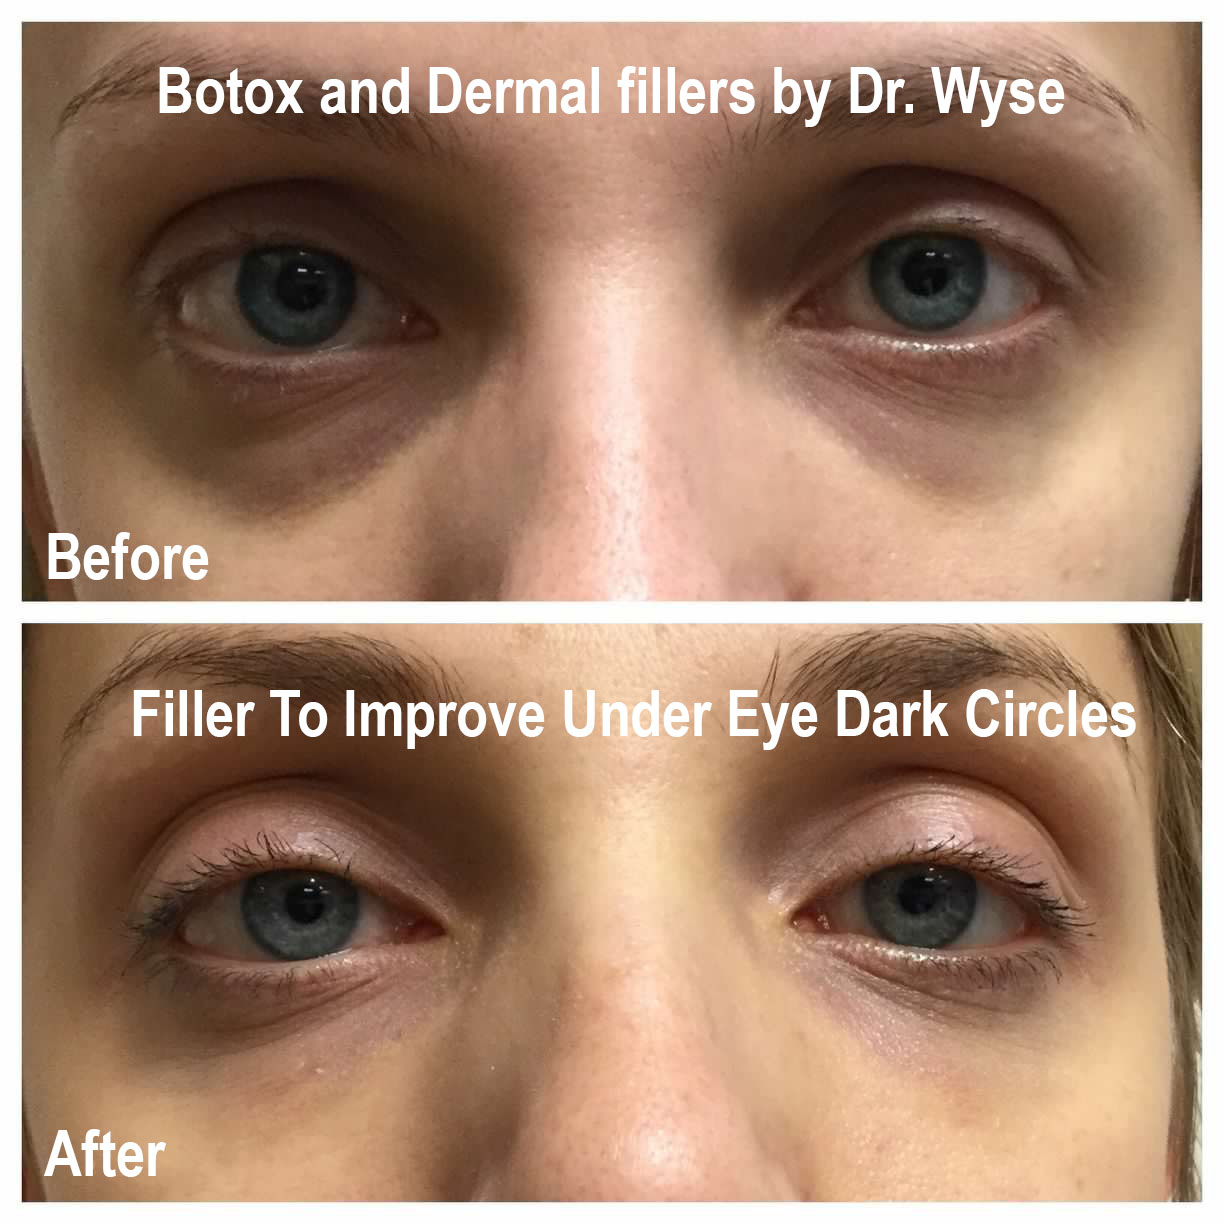 Dr. Wyse BOTOX and Dermal Fillers